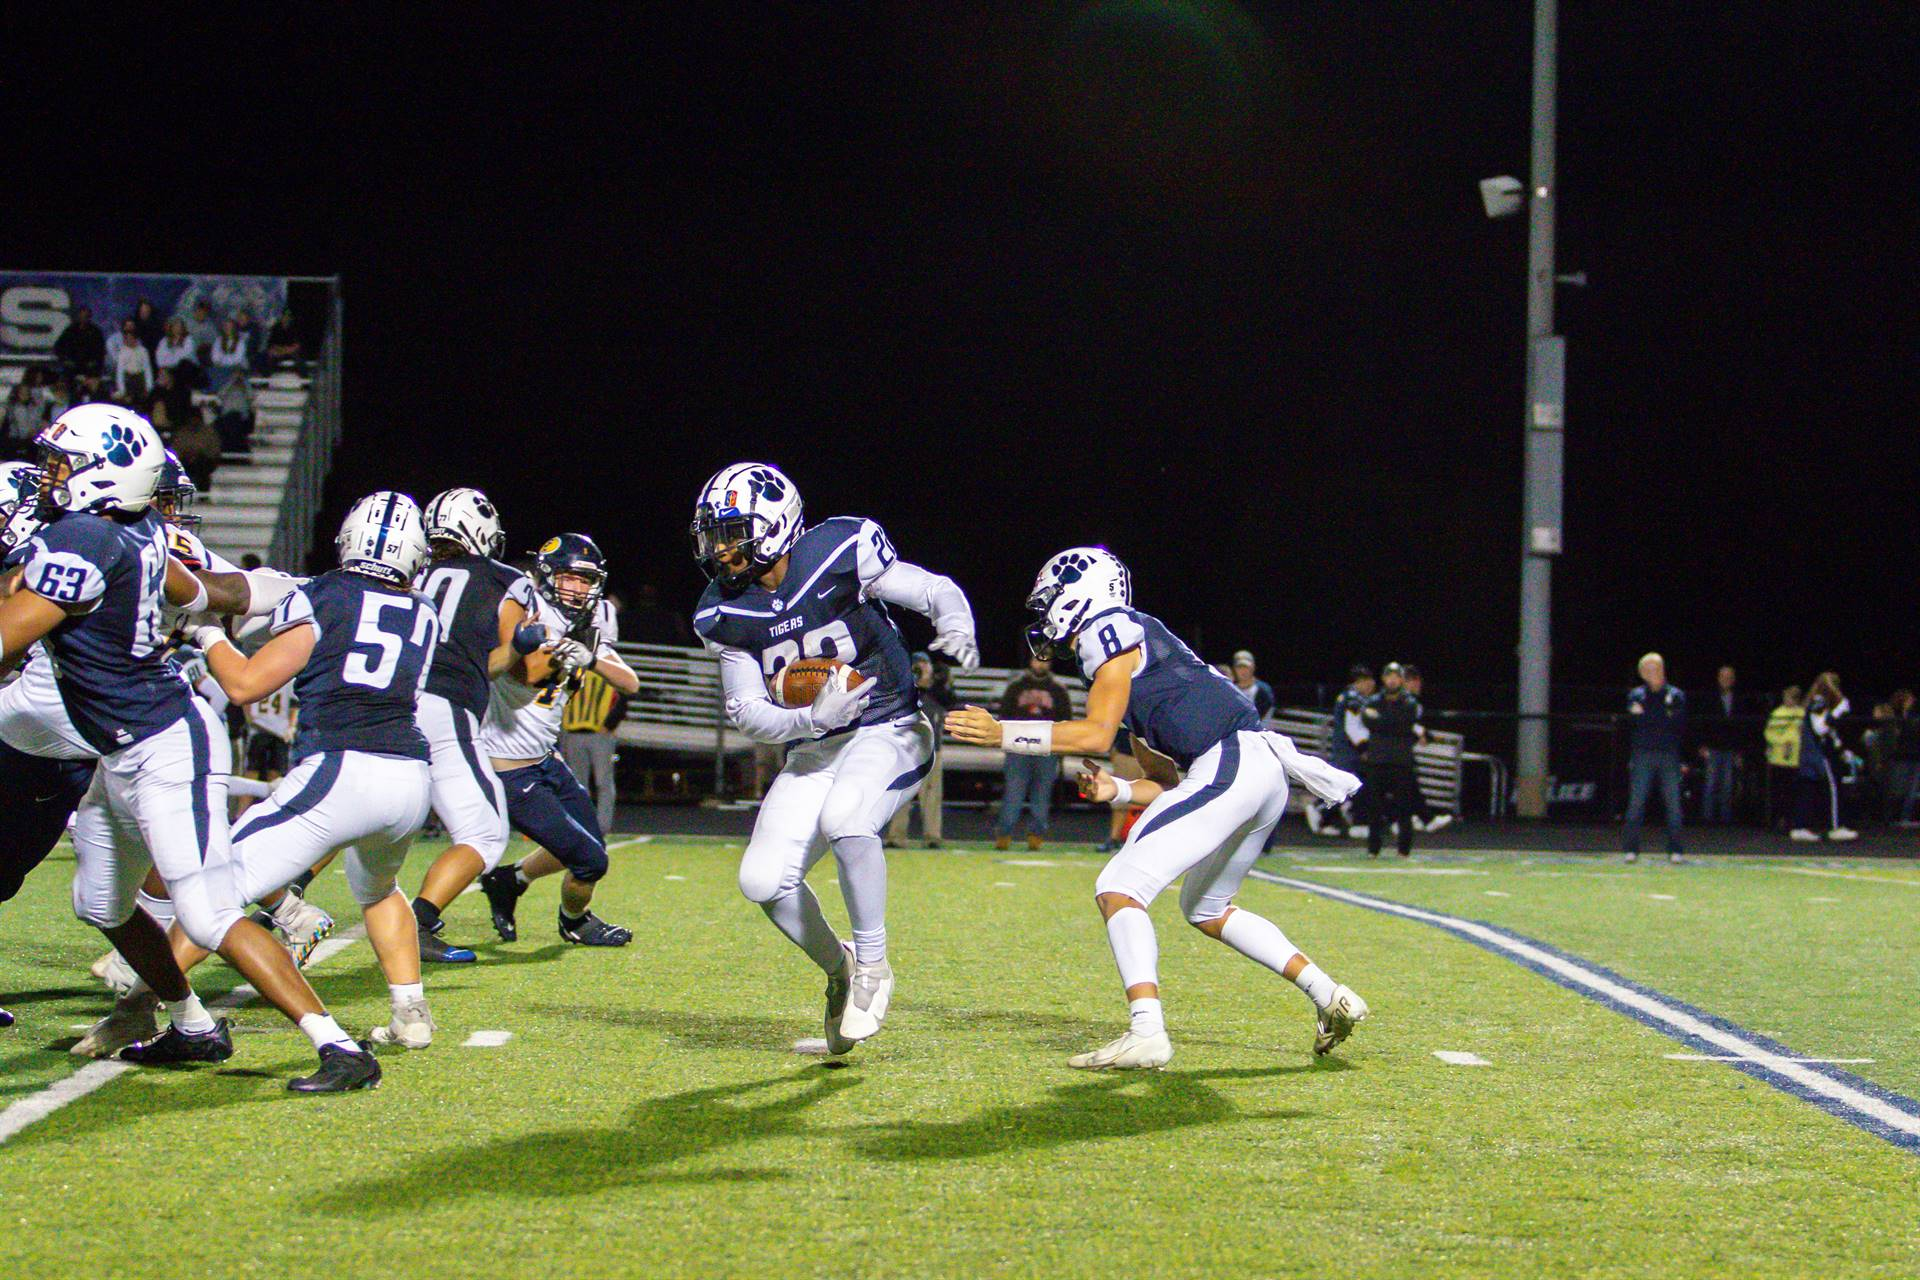 The running back taking the handoff from the quarterback.